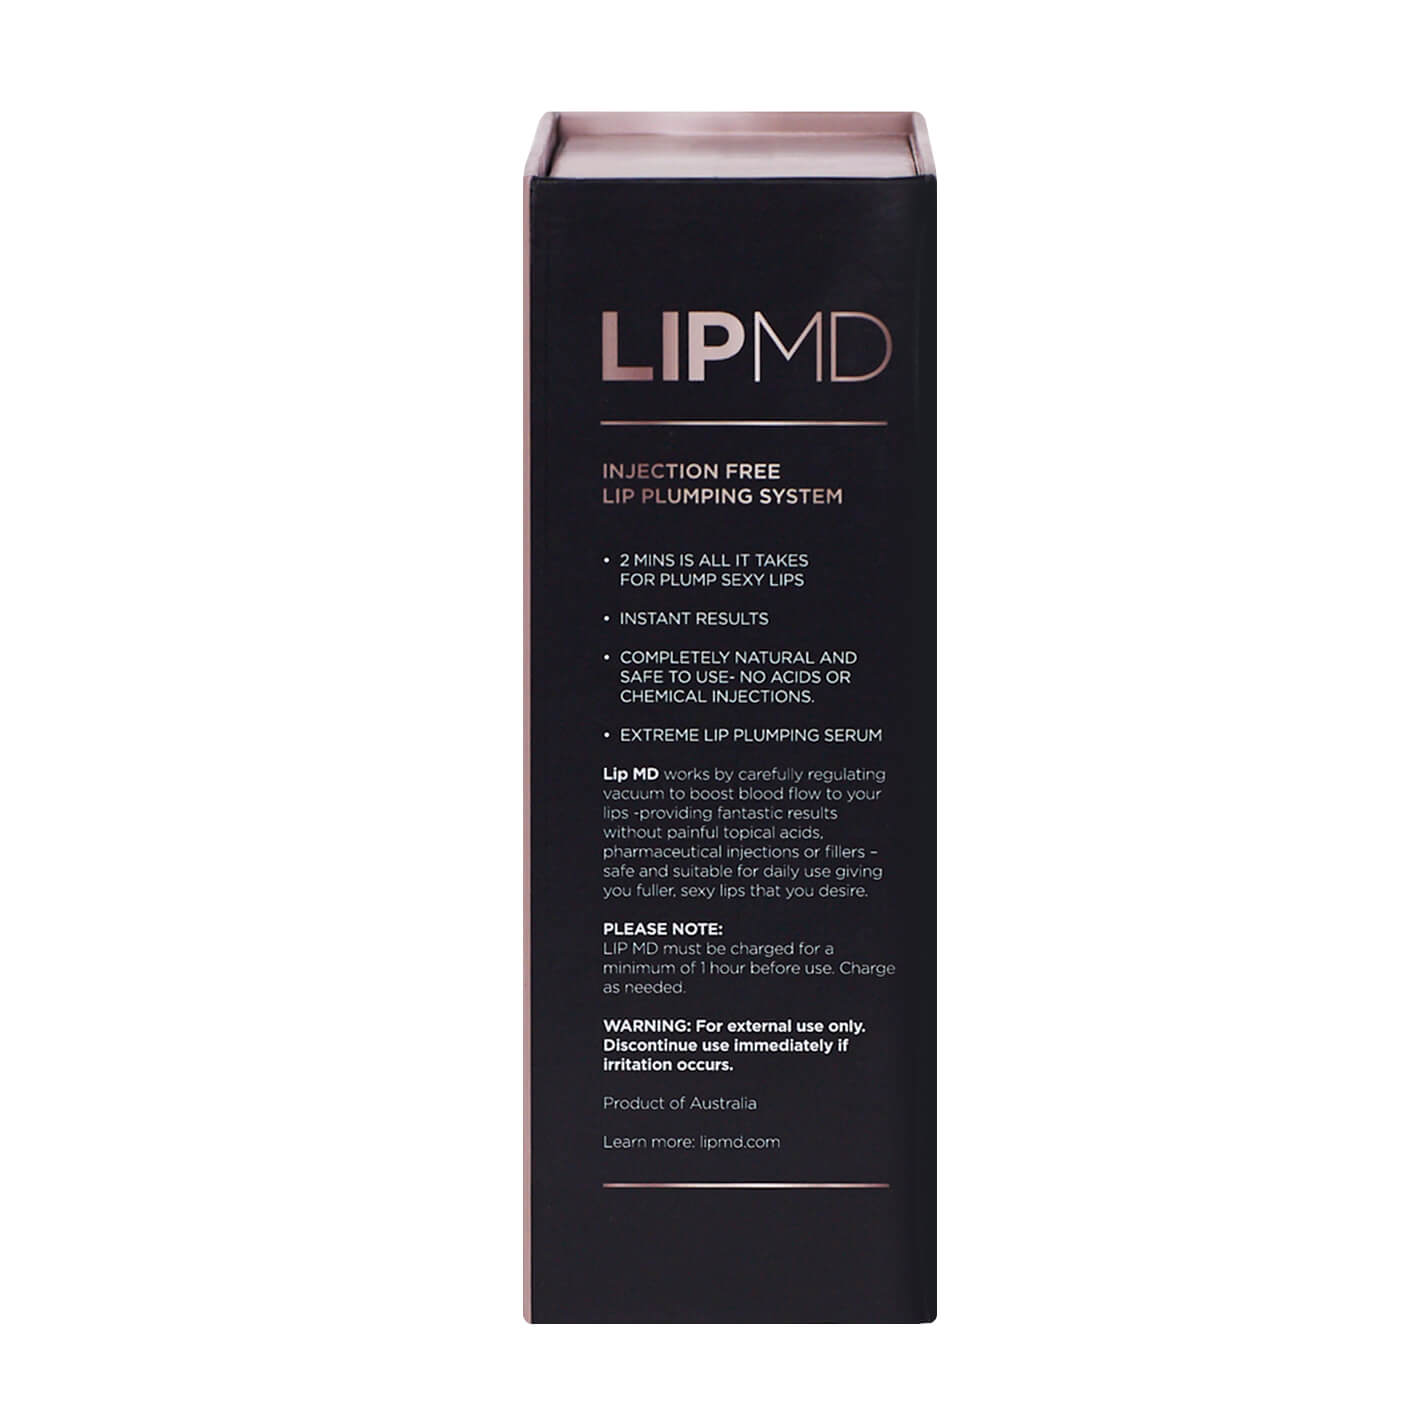 AWARD-WINNING ELECTRONIC LIP PLUMPING DEVICE + EXTREME LIP PLUMPING SERUM